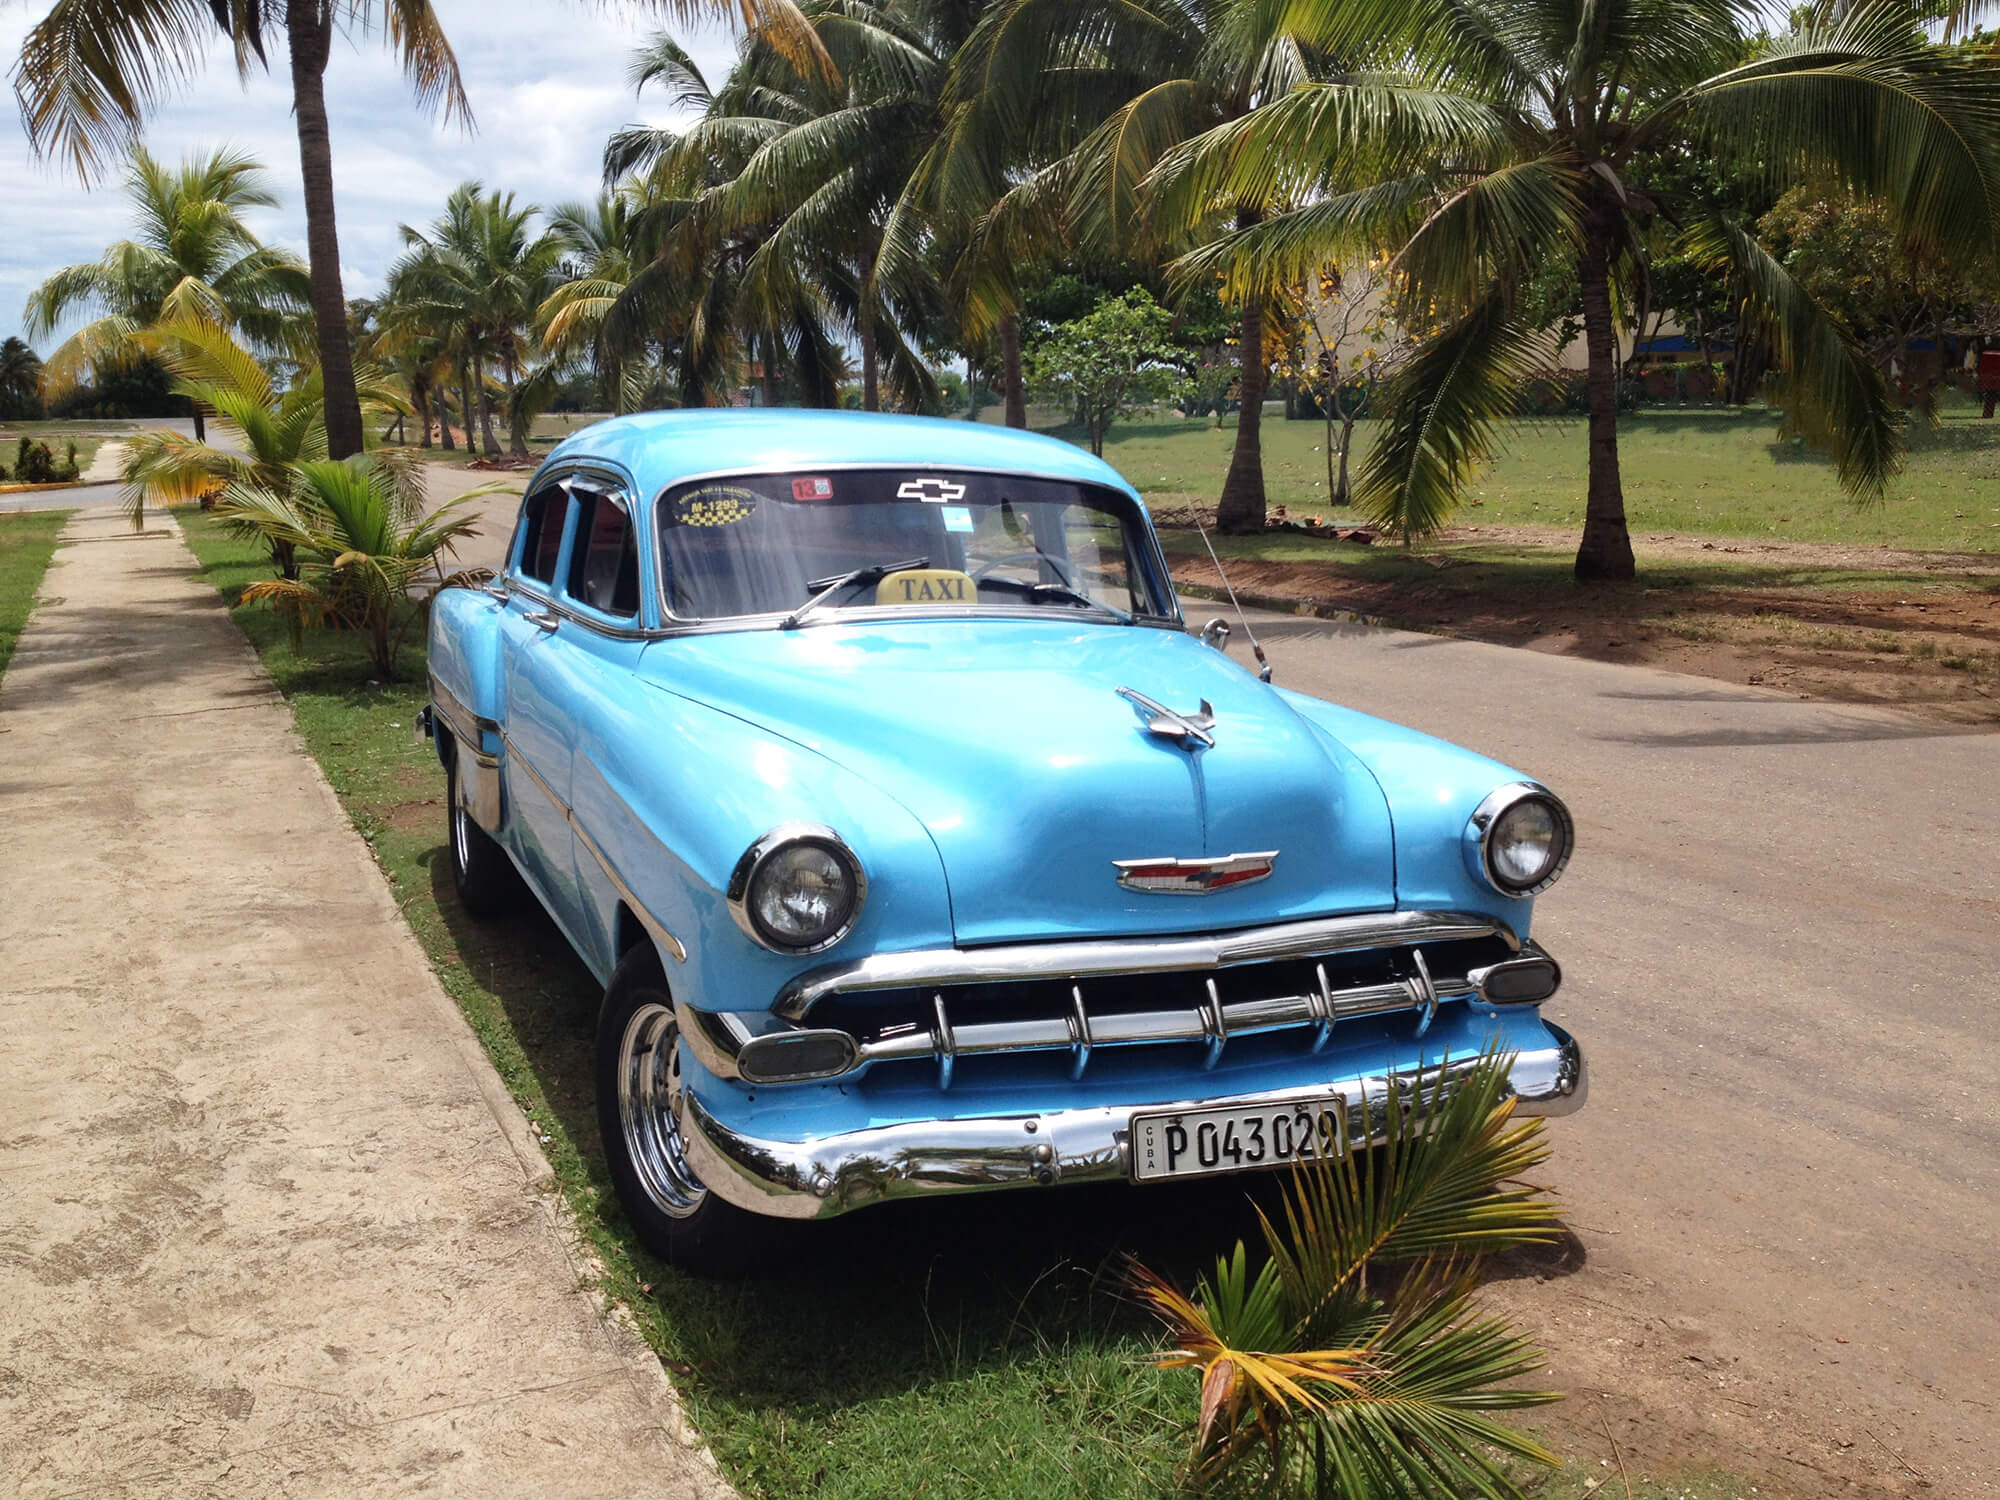 Blue Cuban Car on the Street